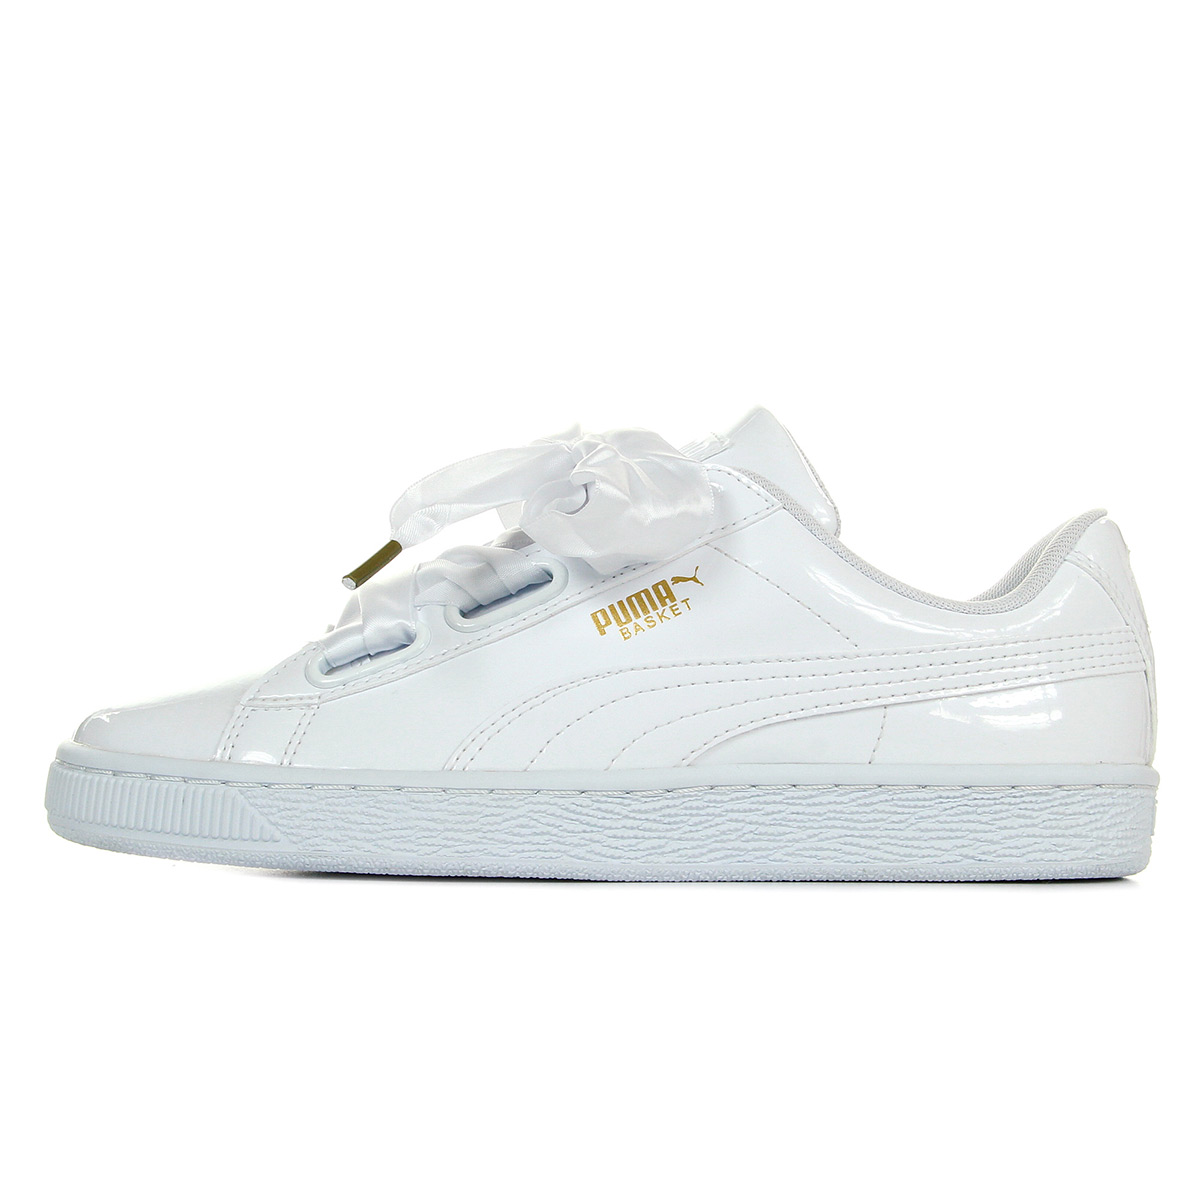 Blanche Basket Femme Baskets Chaussures Patent Puma Taille